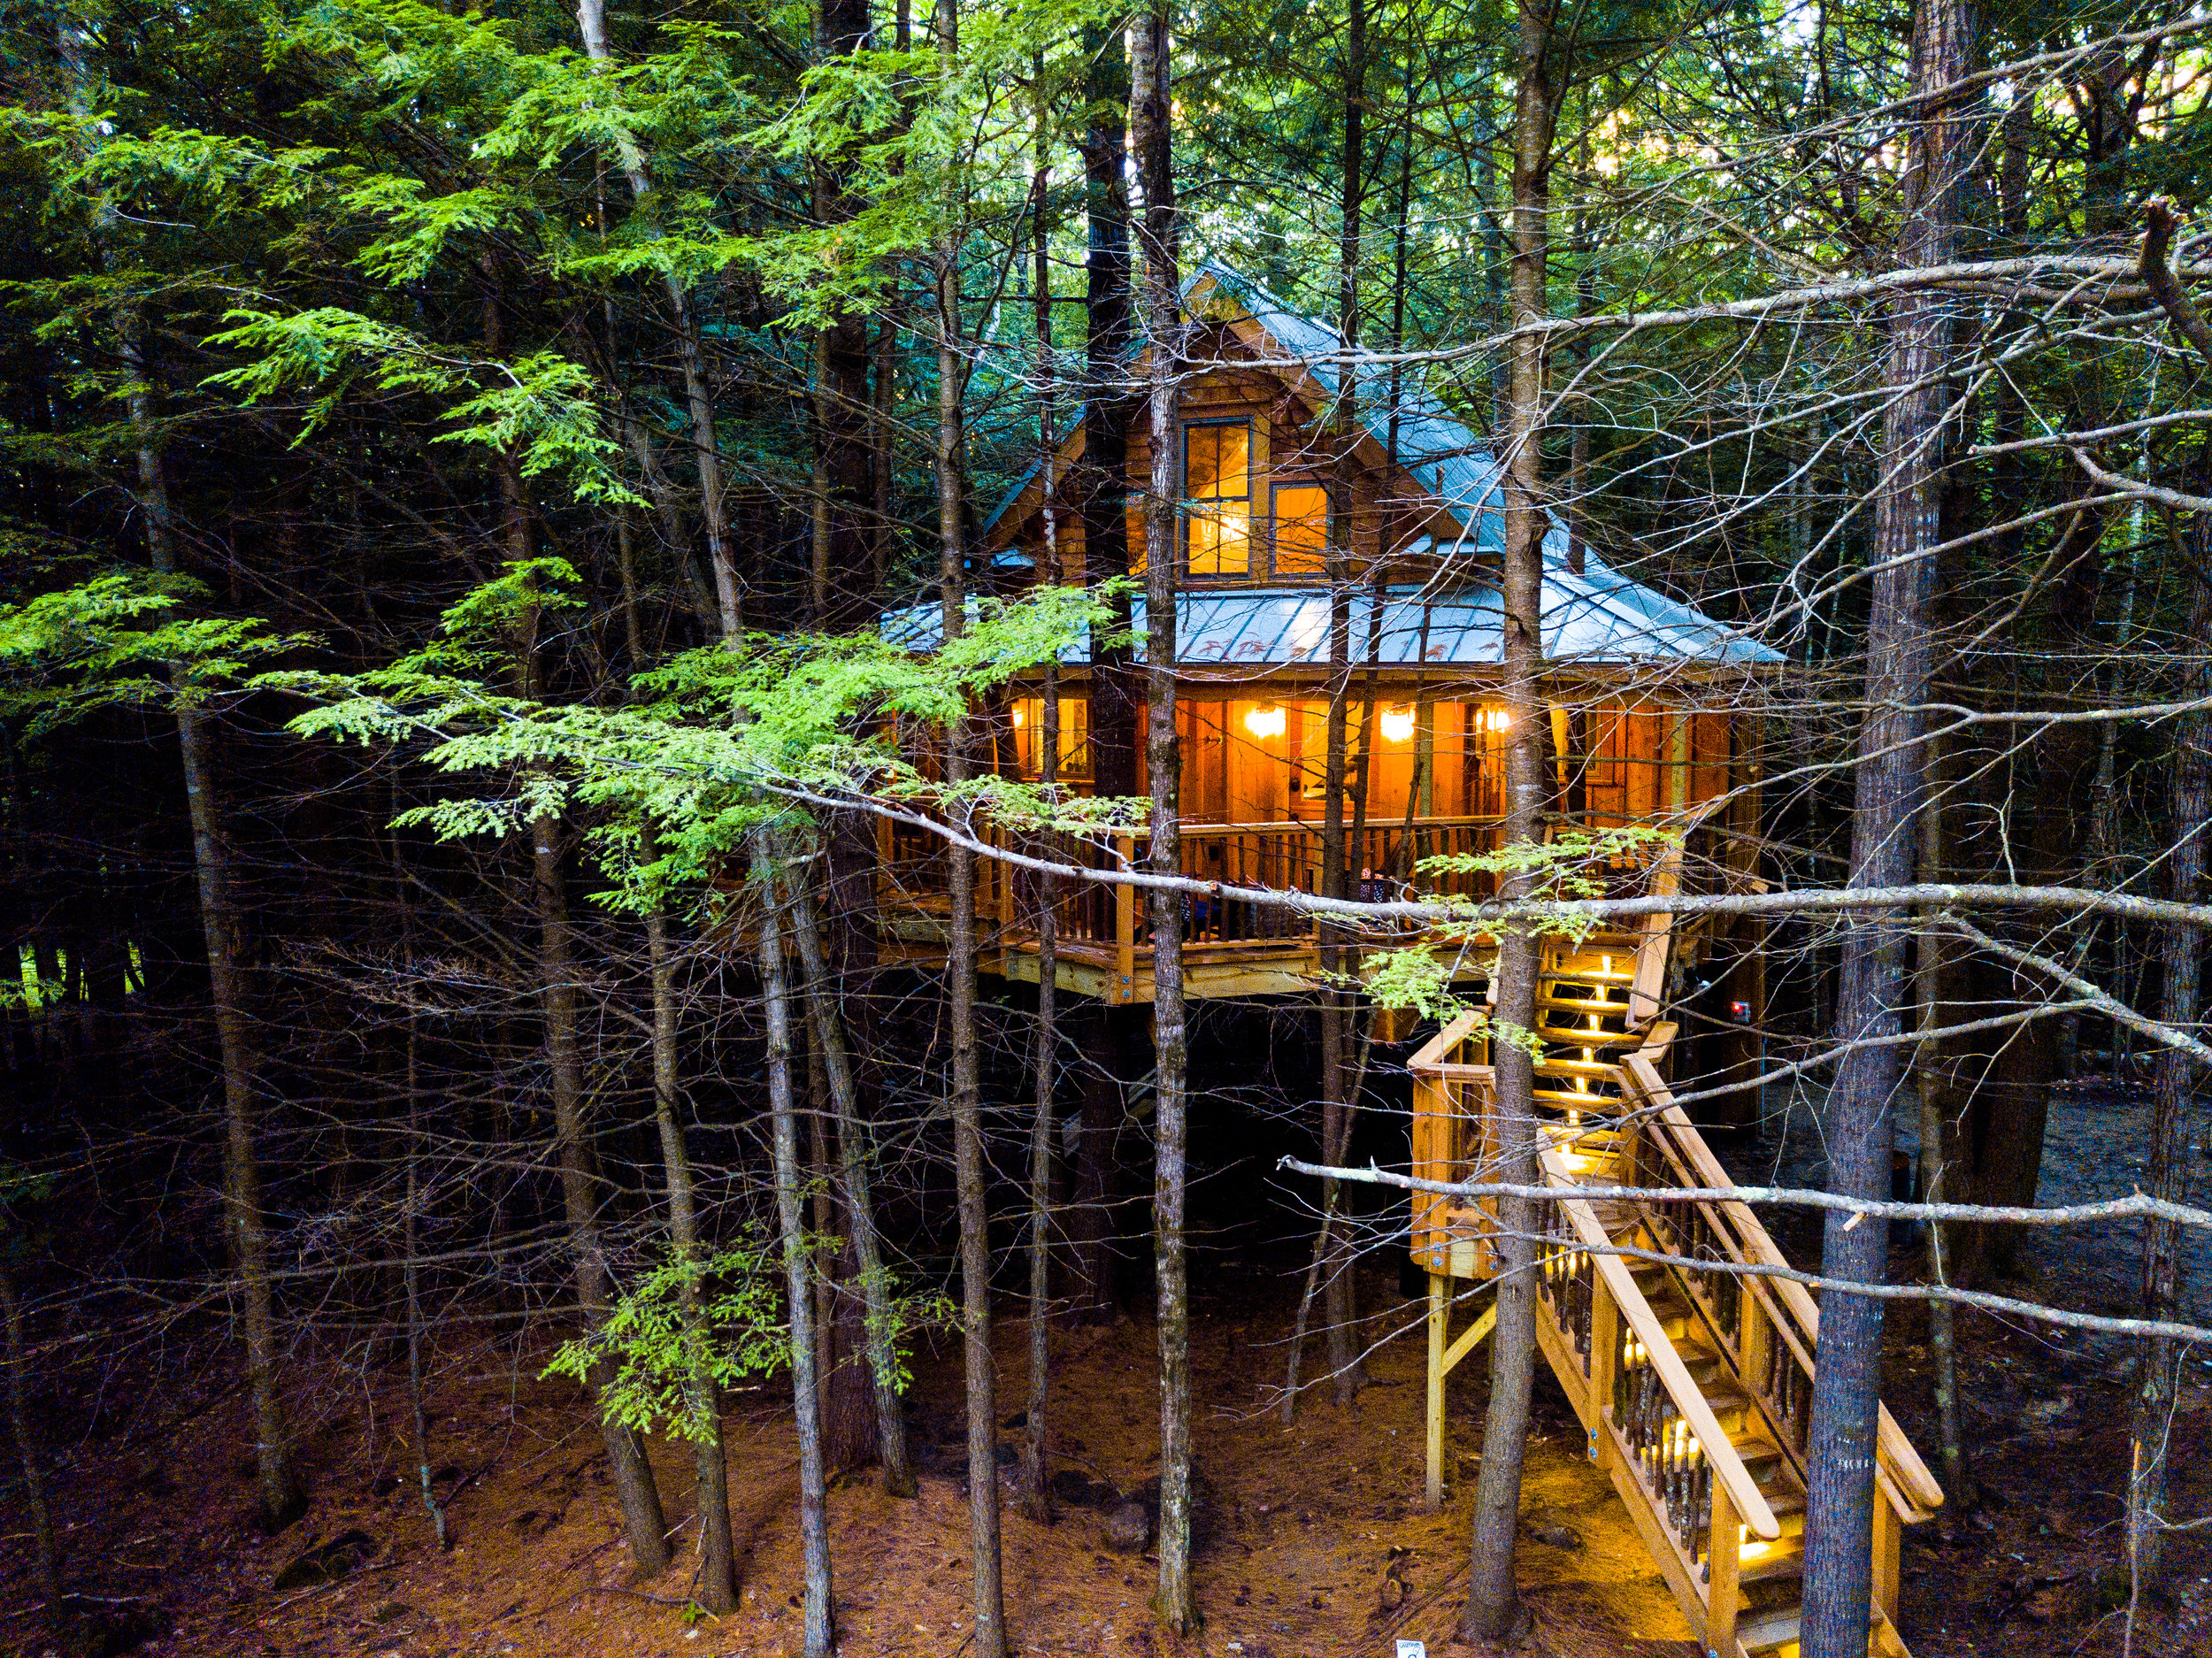 Partnership with The Maine Office of Tourism @VisitMaine & The Woods Maine @Thewoodsmaine